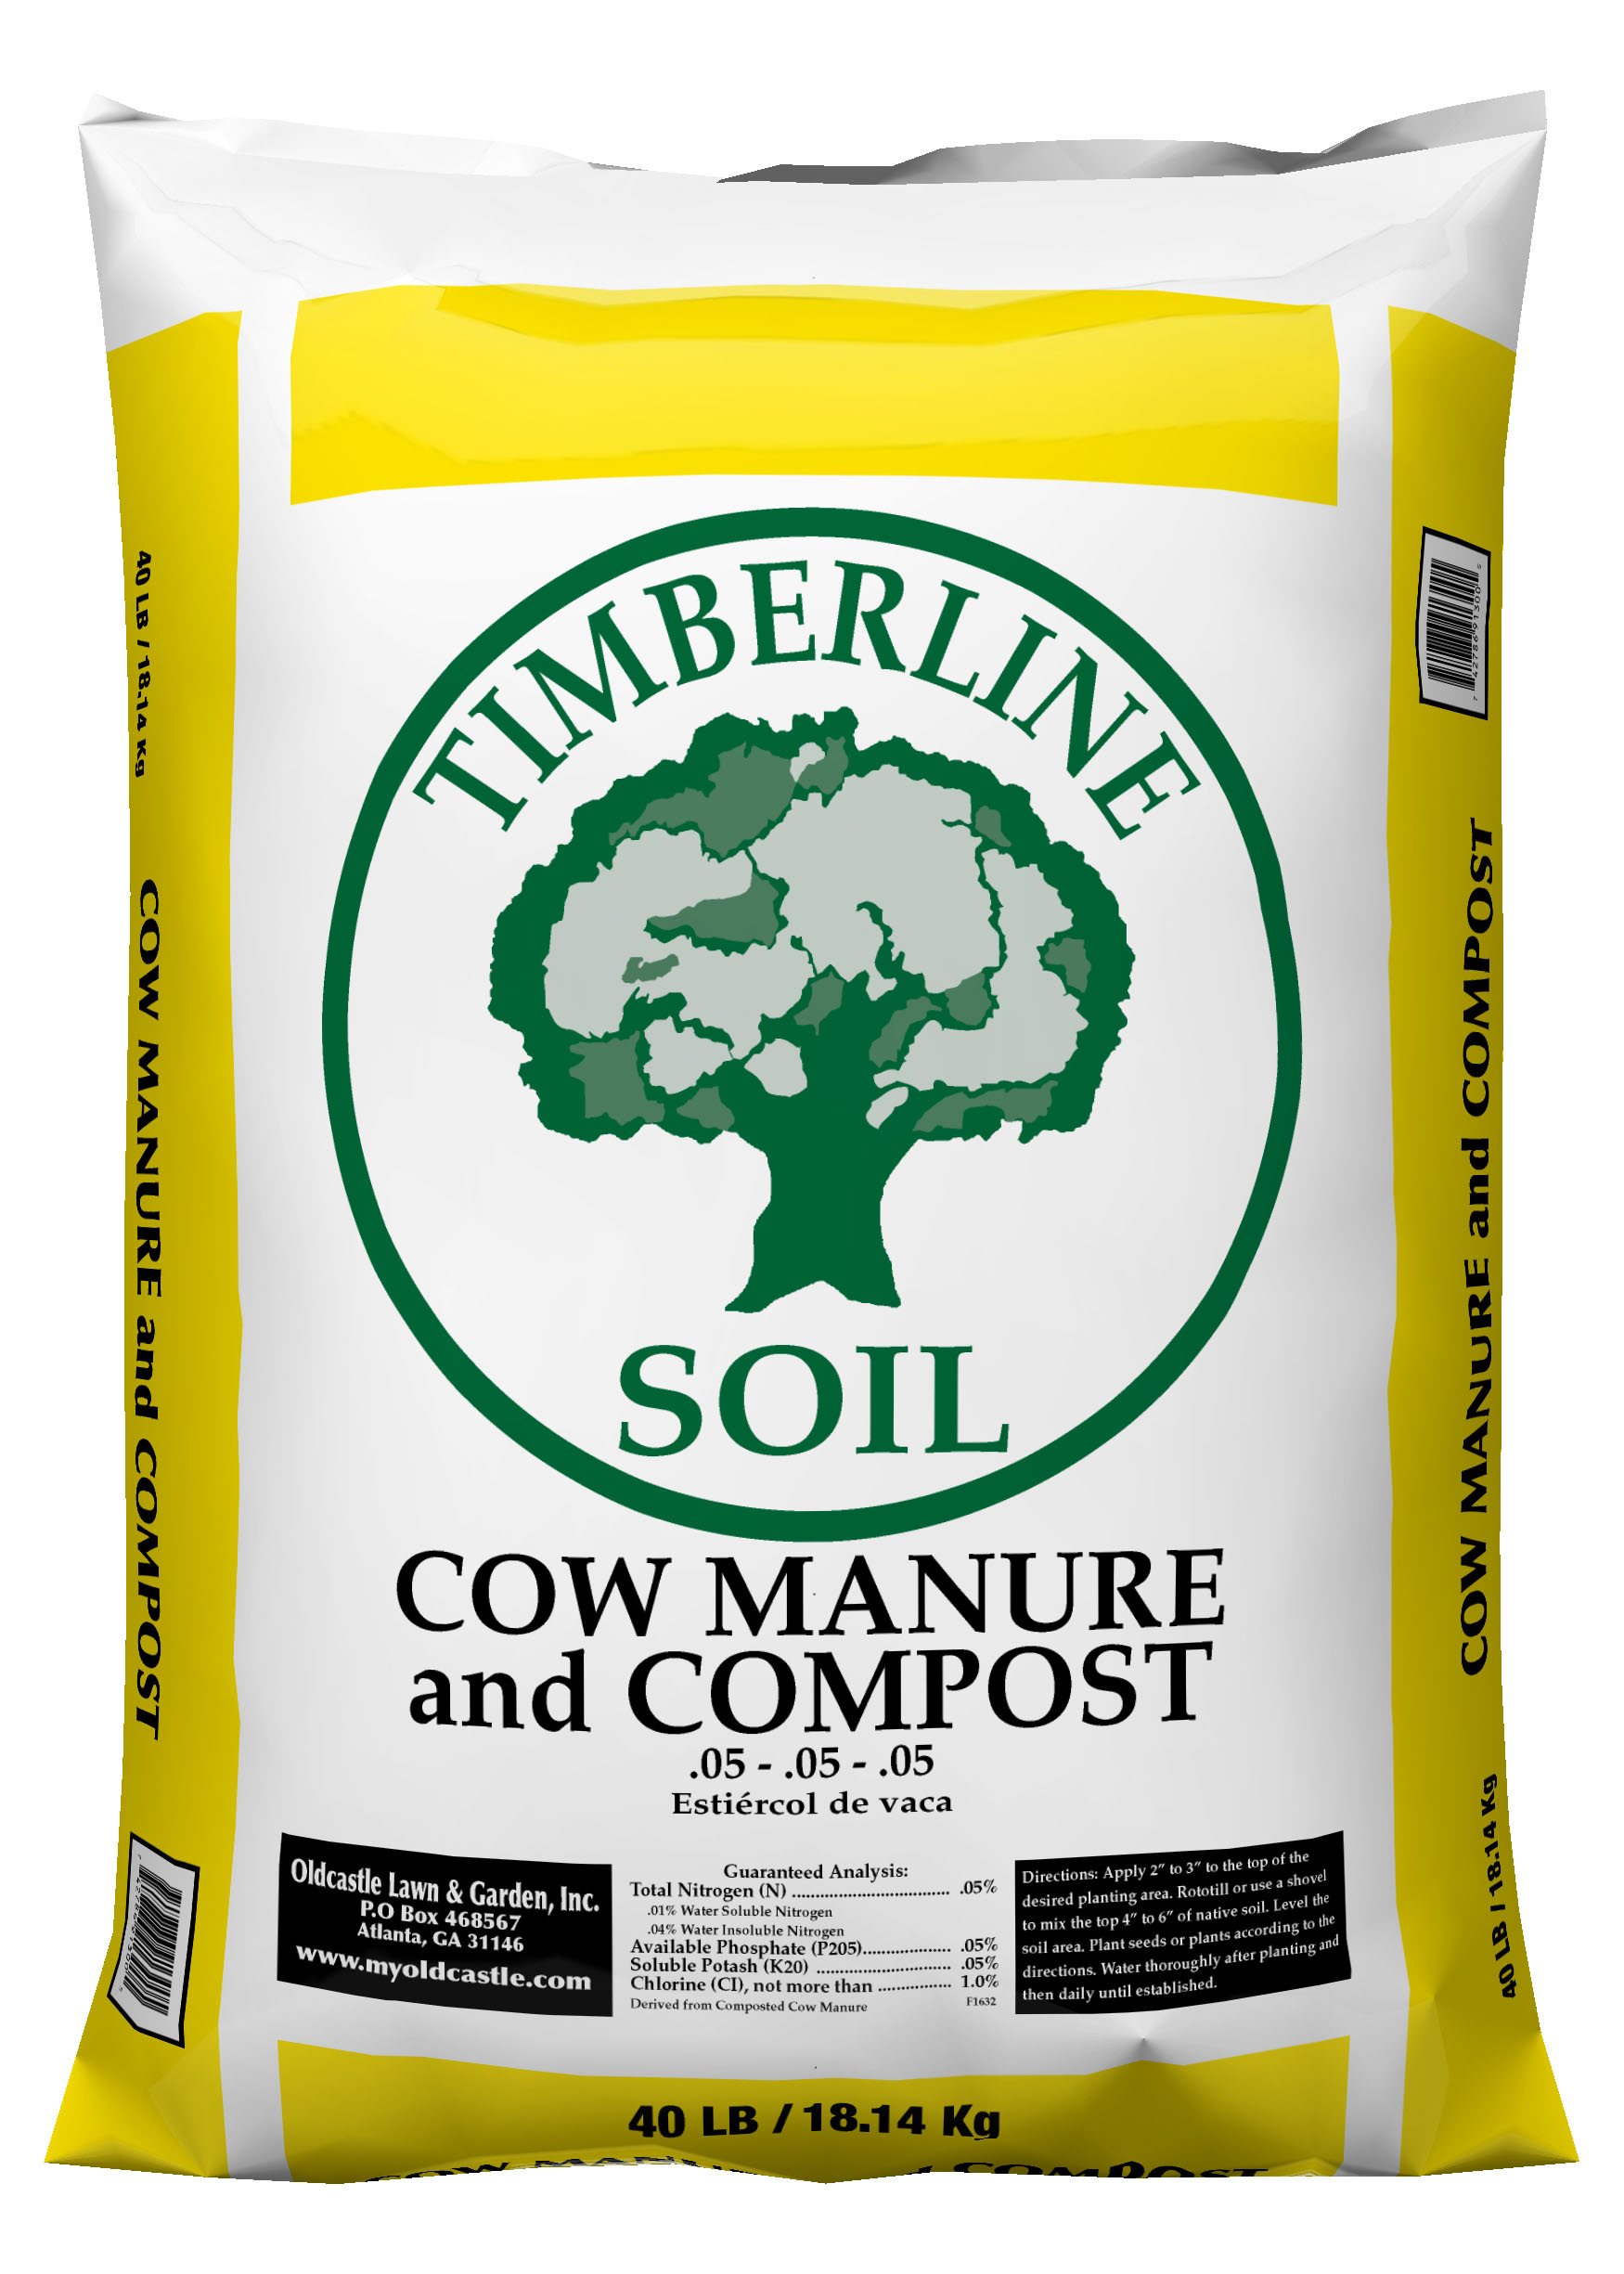 Timberline Cow Compost, 40lb by Oldcastle Lawn and Garden